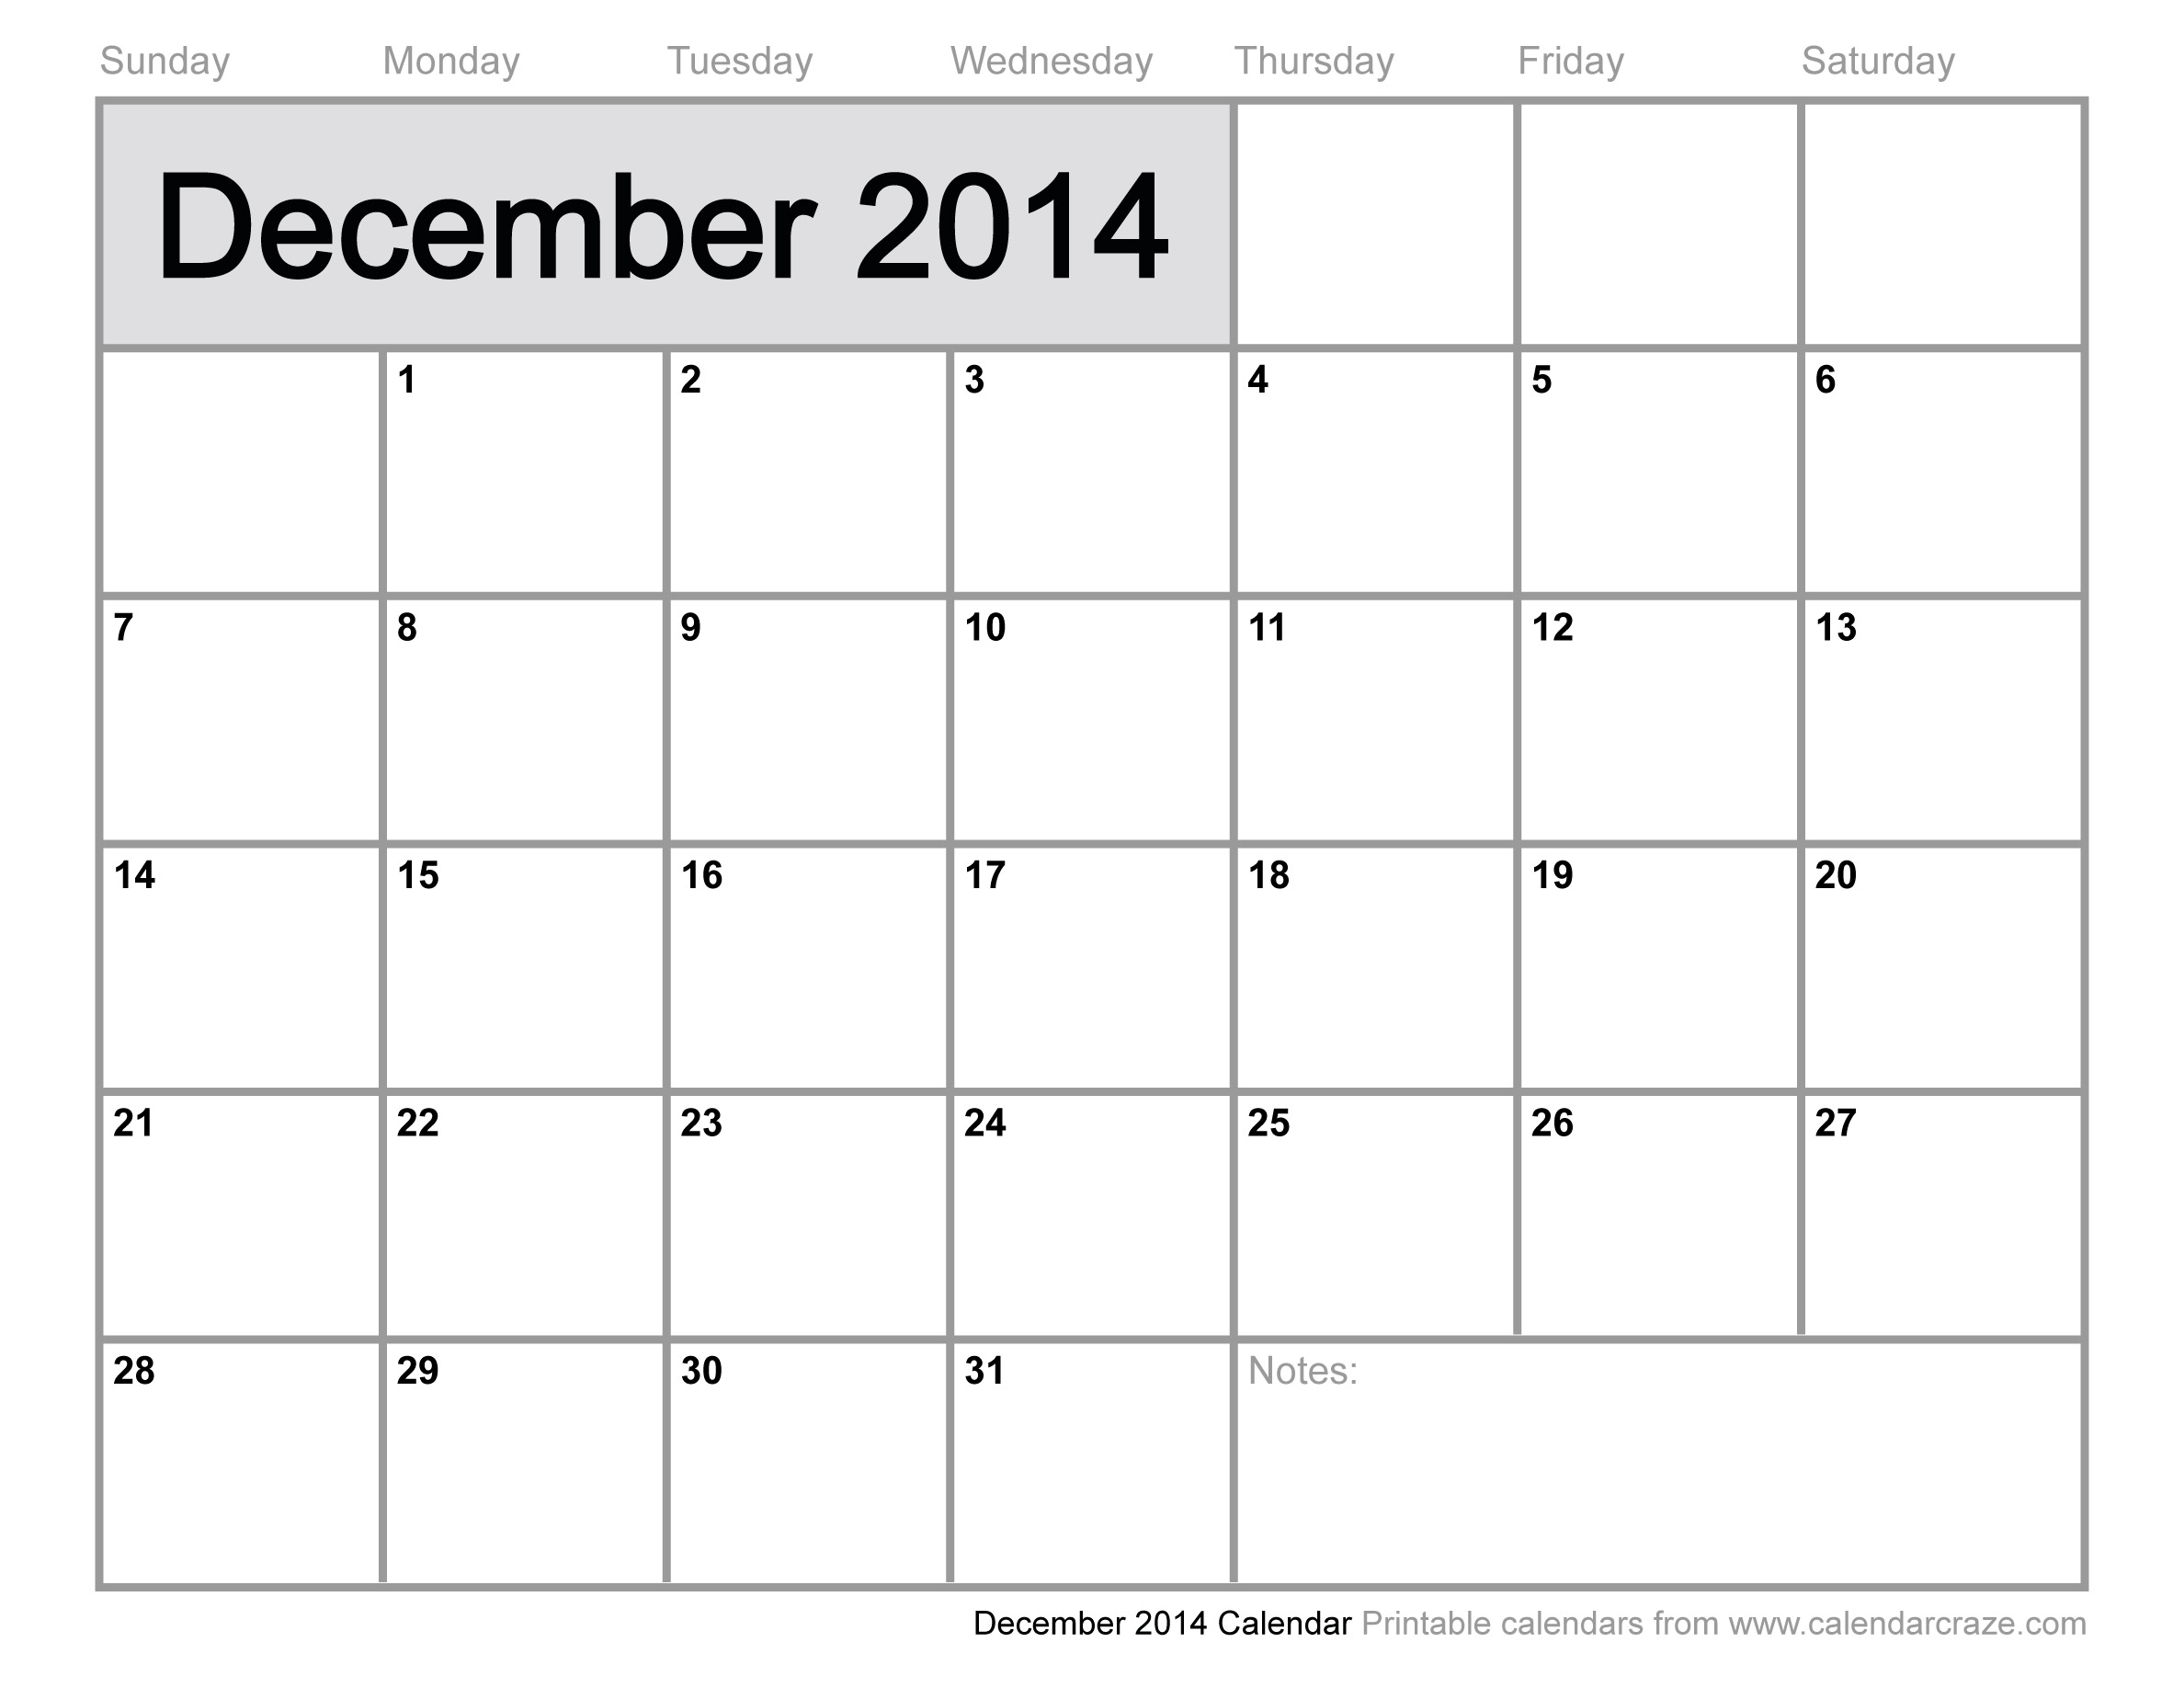 4 Images of Dec 2014 Calendar Printable